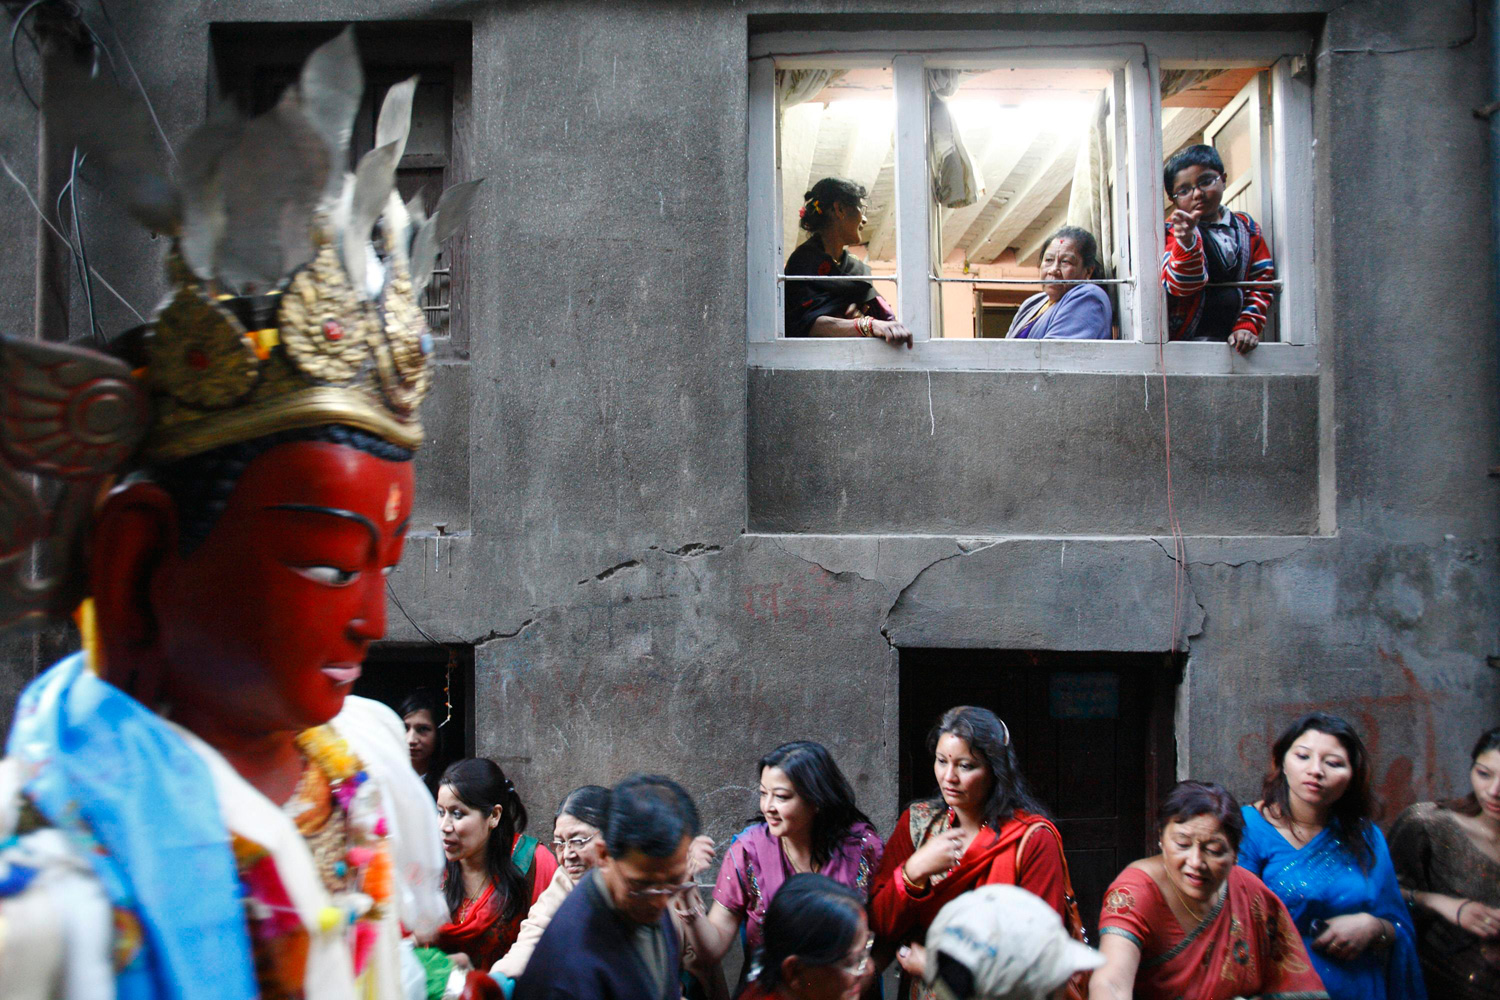 Feb. 25, 2012. Nepalese people watch from the window of their house as a statue of Buddha is brought in at Patan during the Samyak festival in Kathmandu.